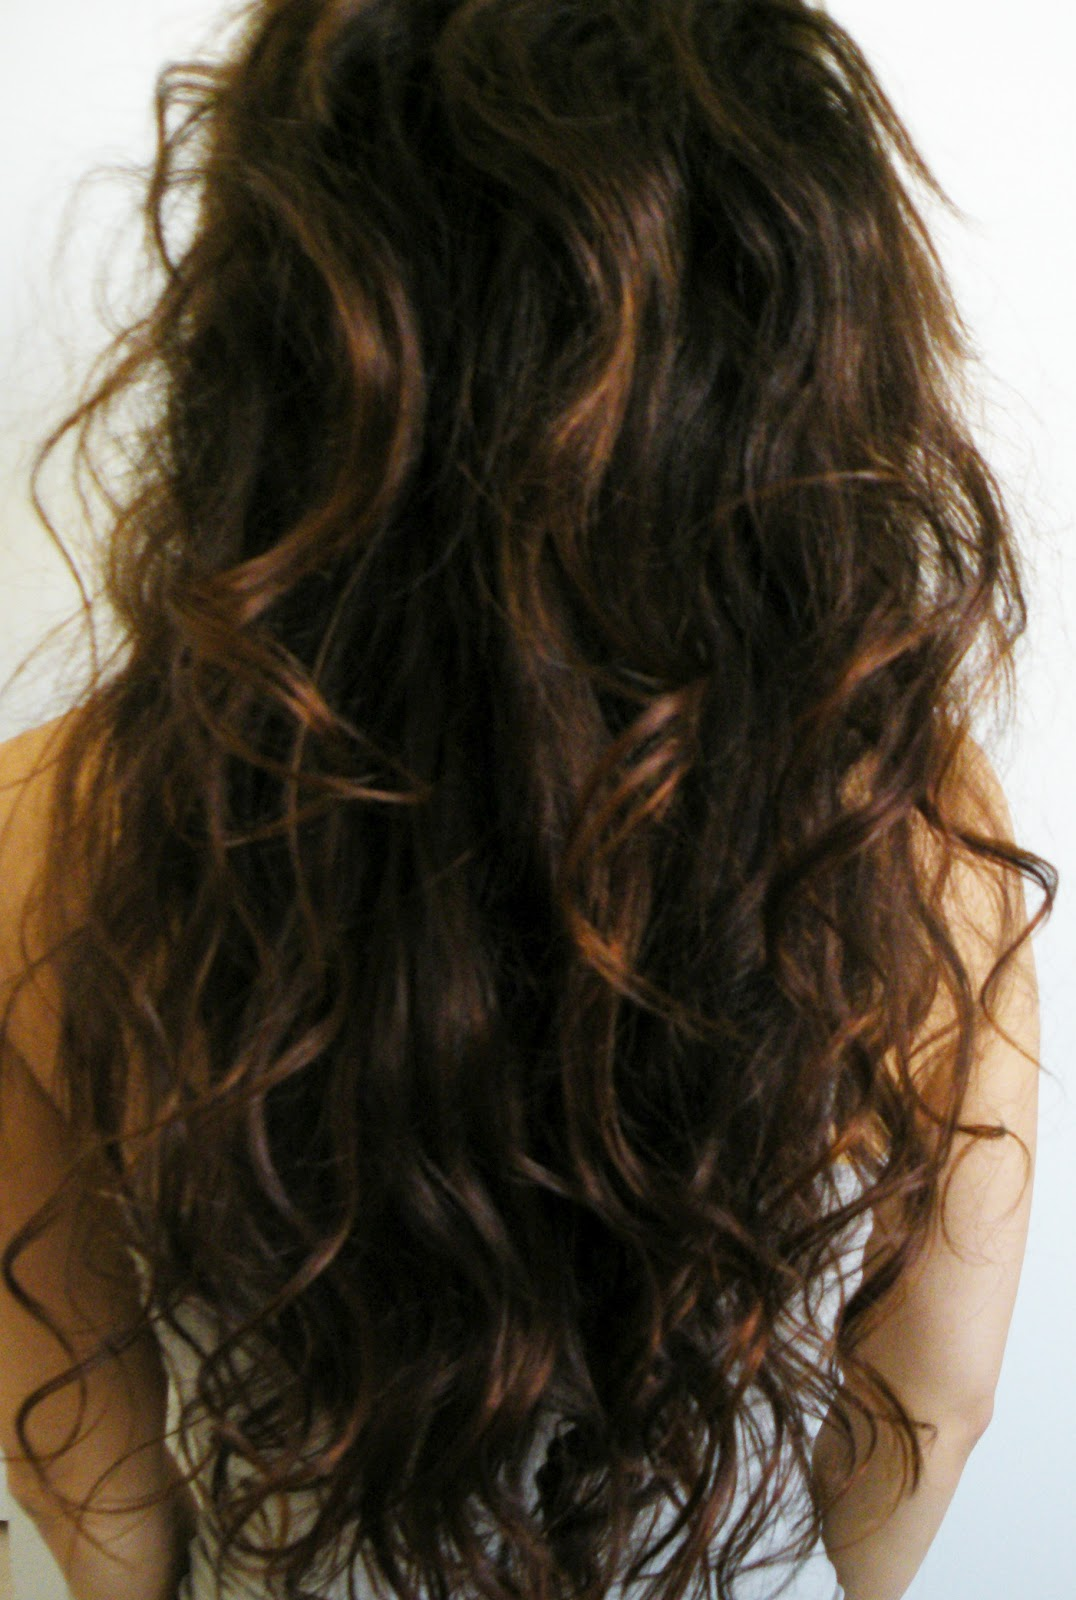 Mobility of a pin curl. Overnight Wavy and Curly Hairstyles - Women Hairstyles